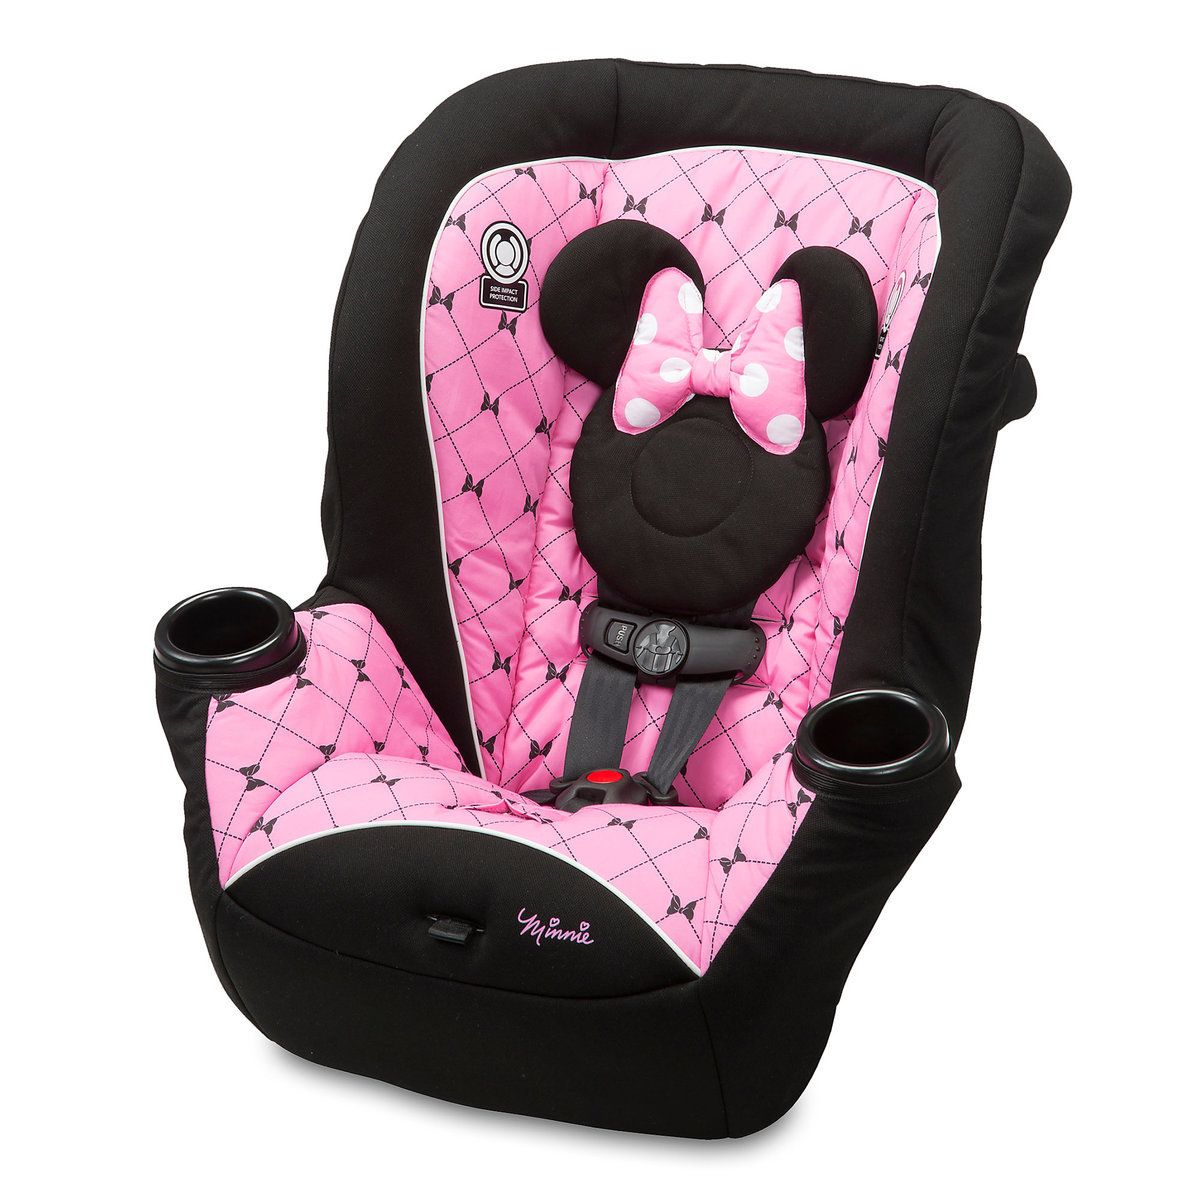 Minnie Mouse Convertible Car Seat Best convertible car